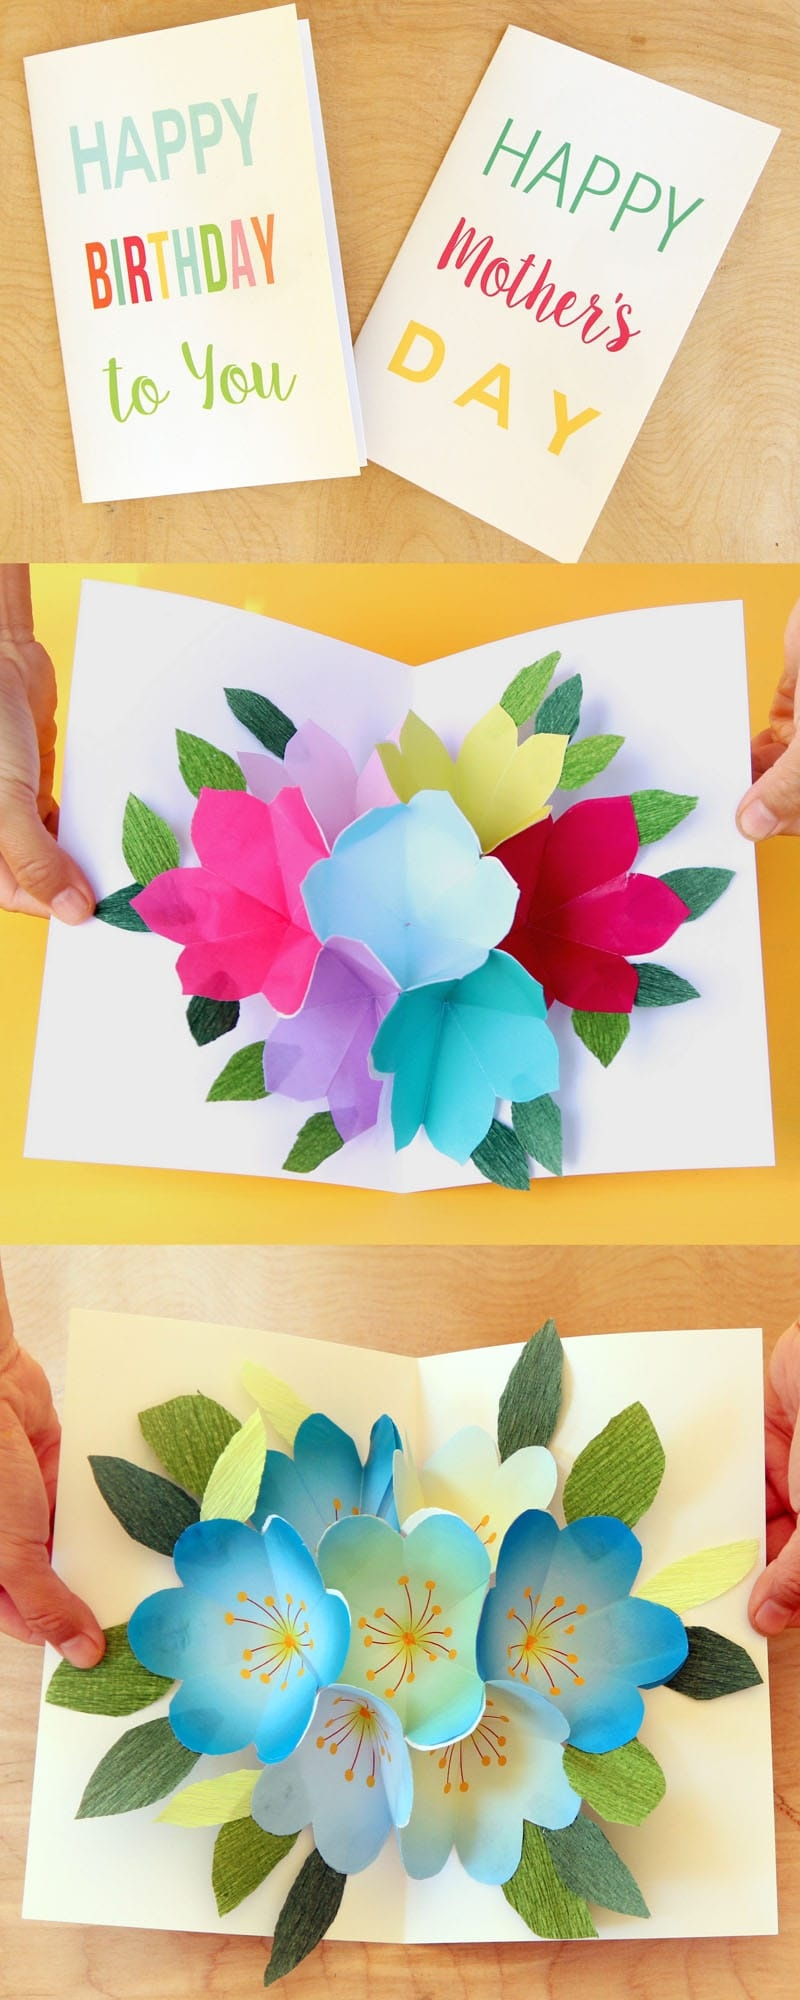 Free Printable Happy Birthday Card With Pop Up Bouquet - A Piece Of - Free Printable Birthday Cards For Her